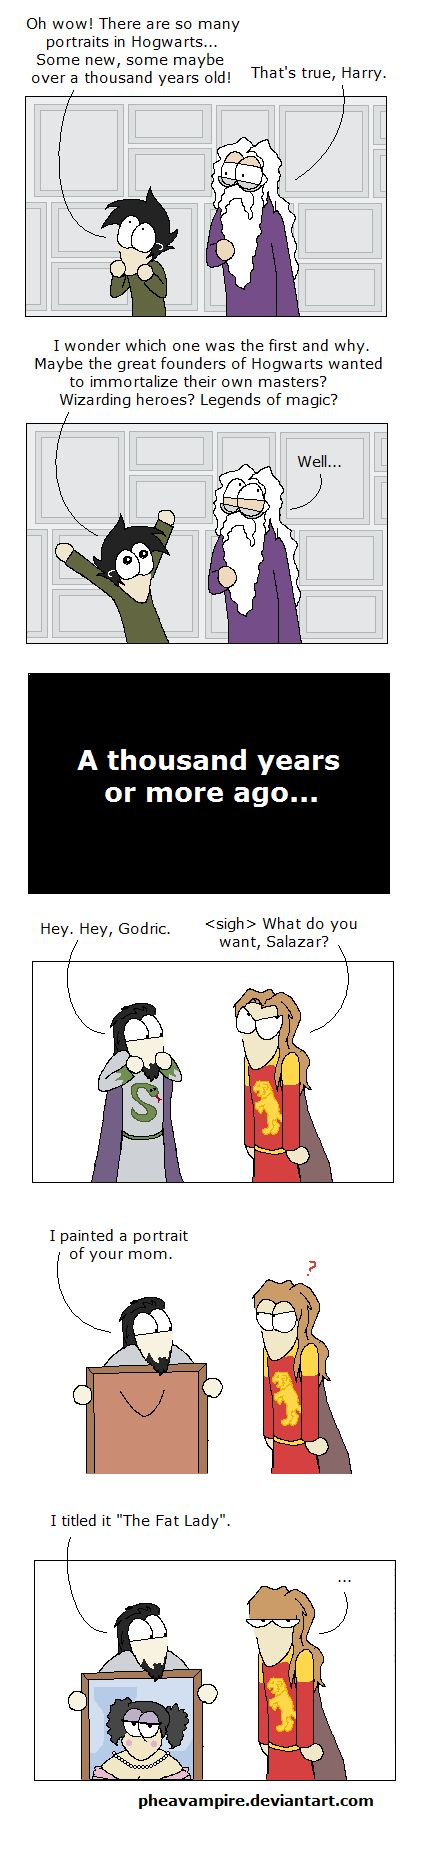 Harry Potter Humor >>> oh wow it went in a complete different direction than I expected